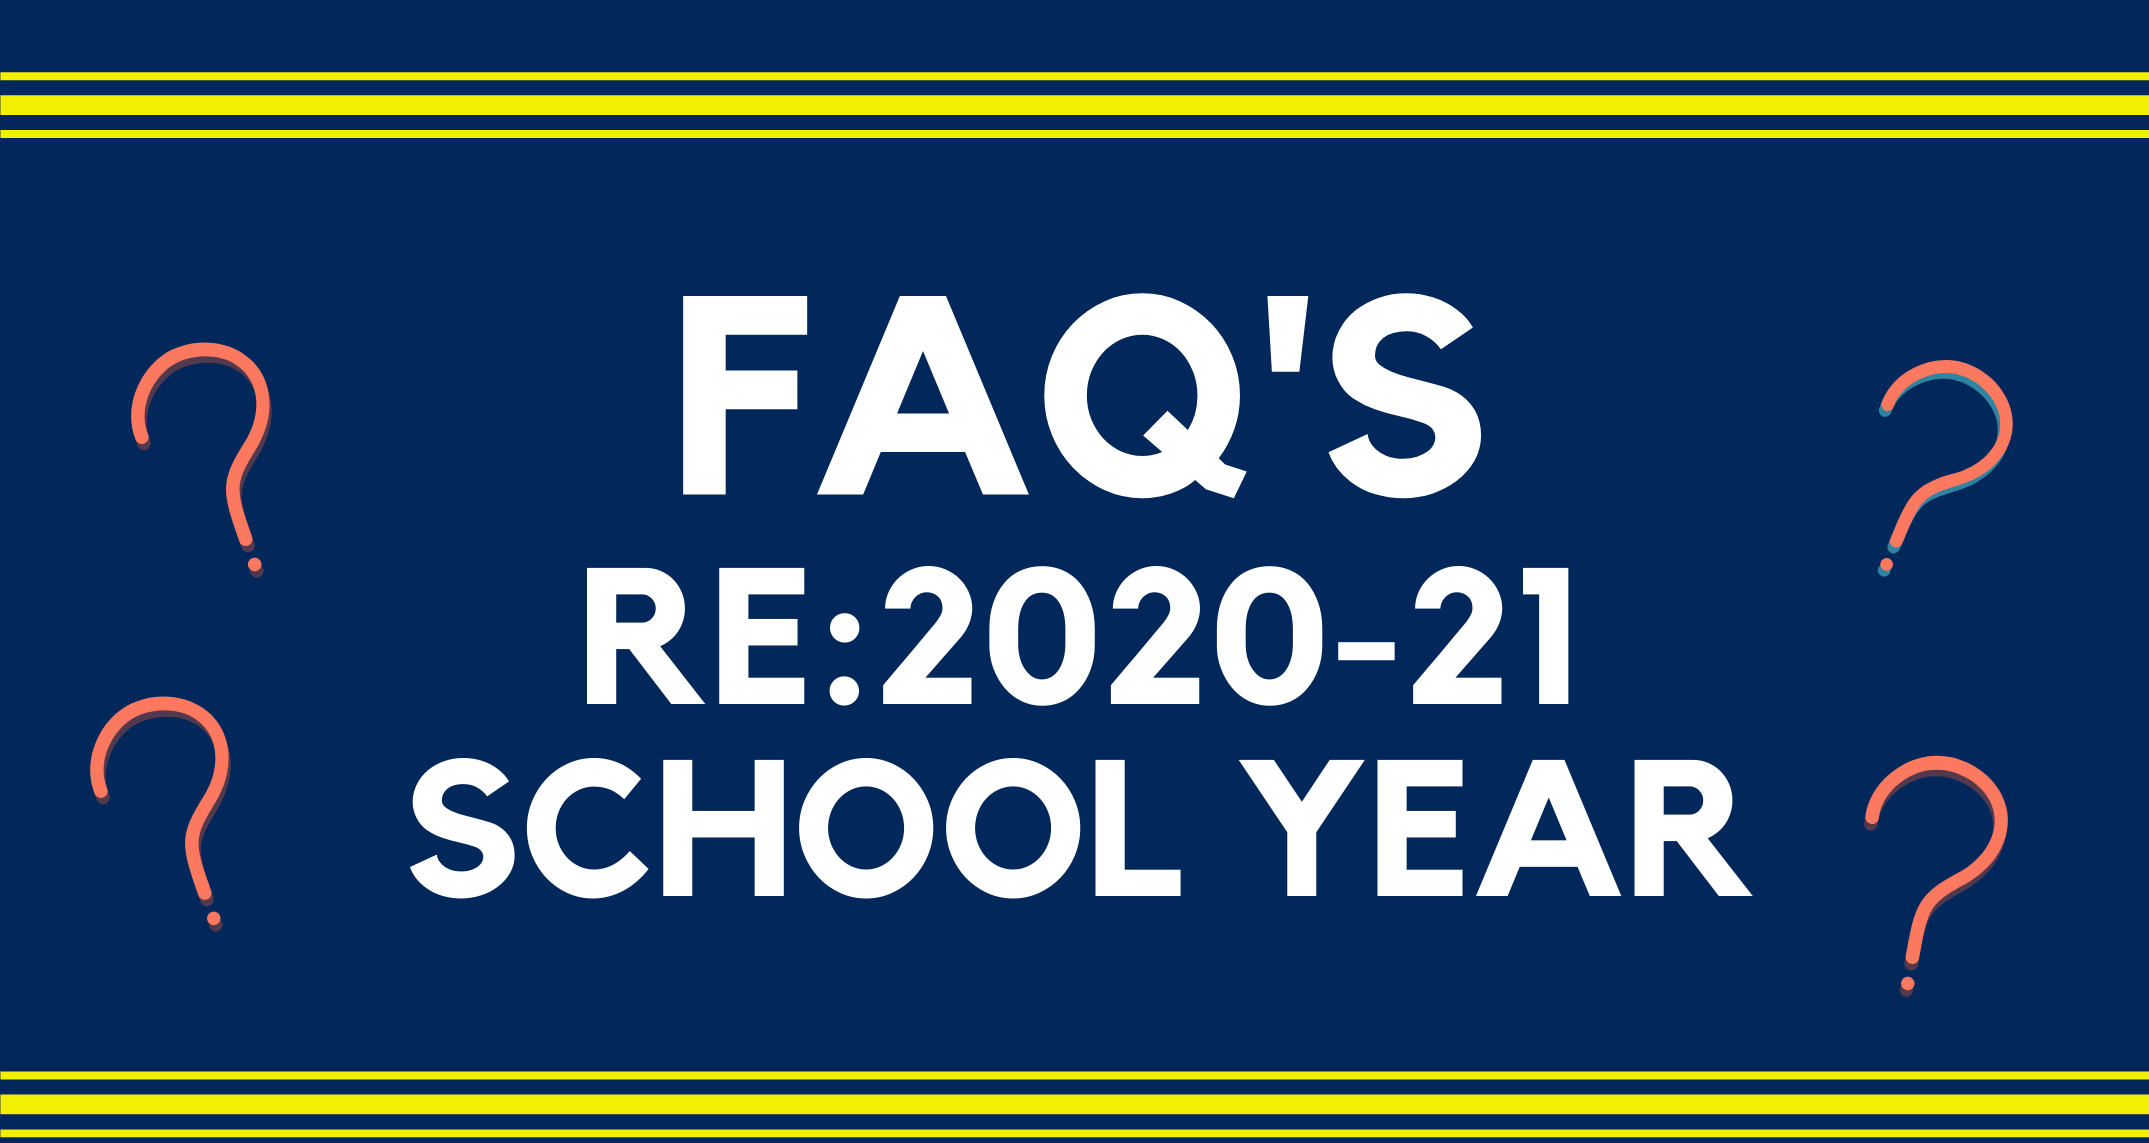 FAQ's RE: School 2020/21